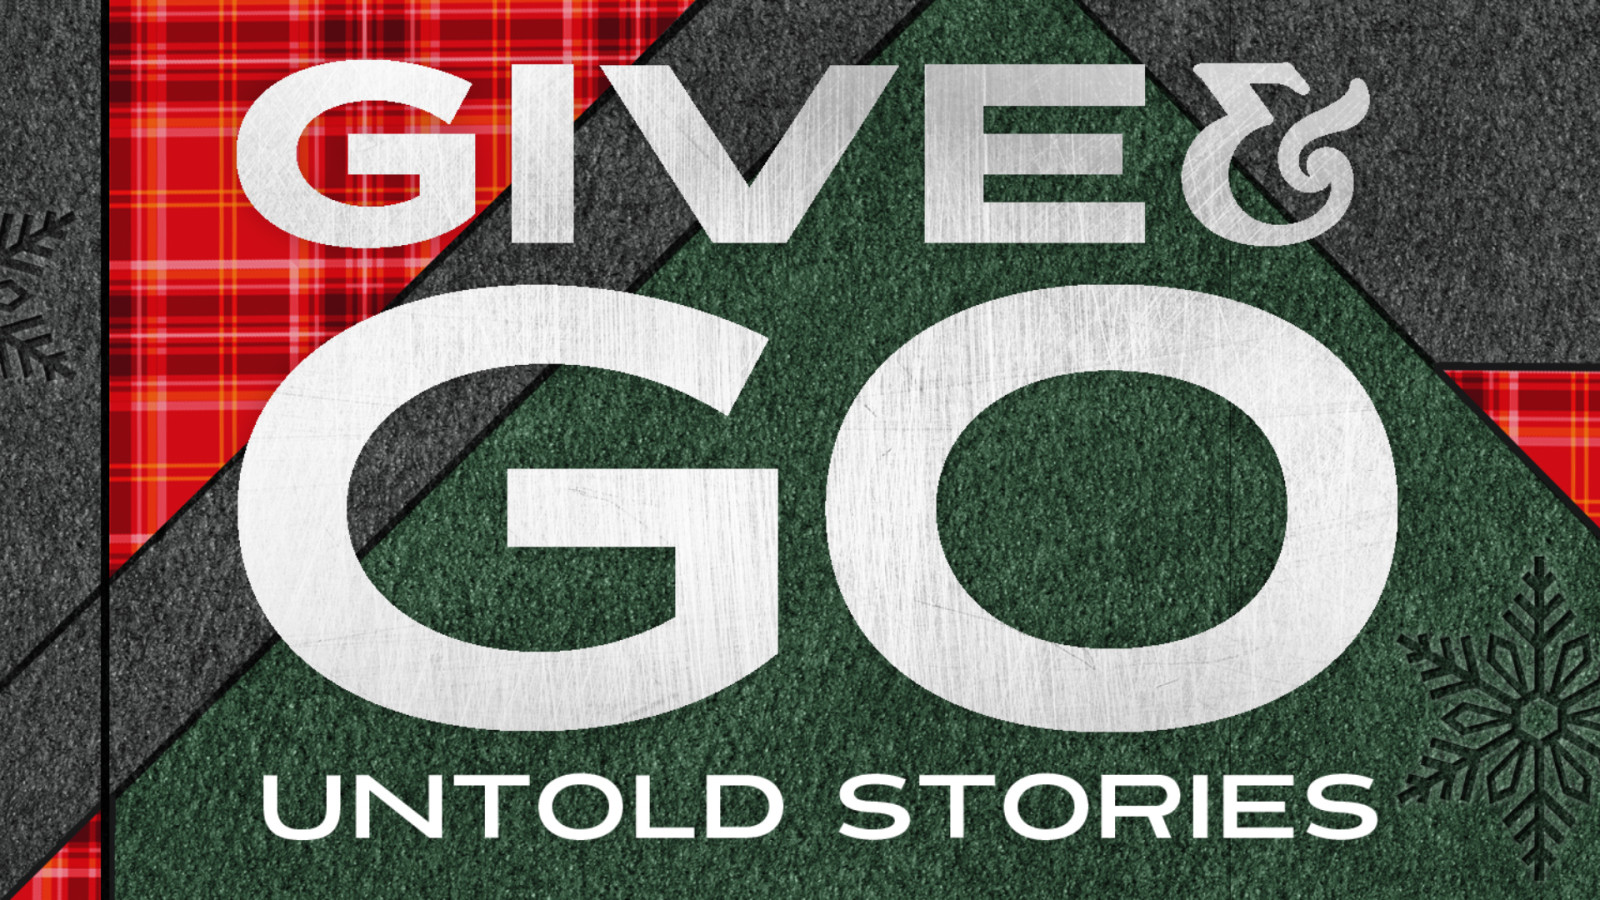 Give & Go: Have You Been Told Our Untold Stories? Hero Image